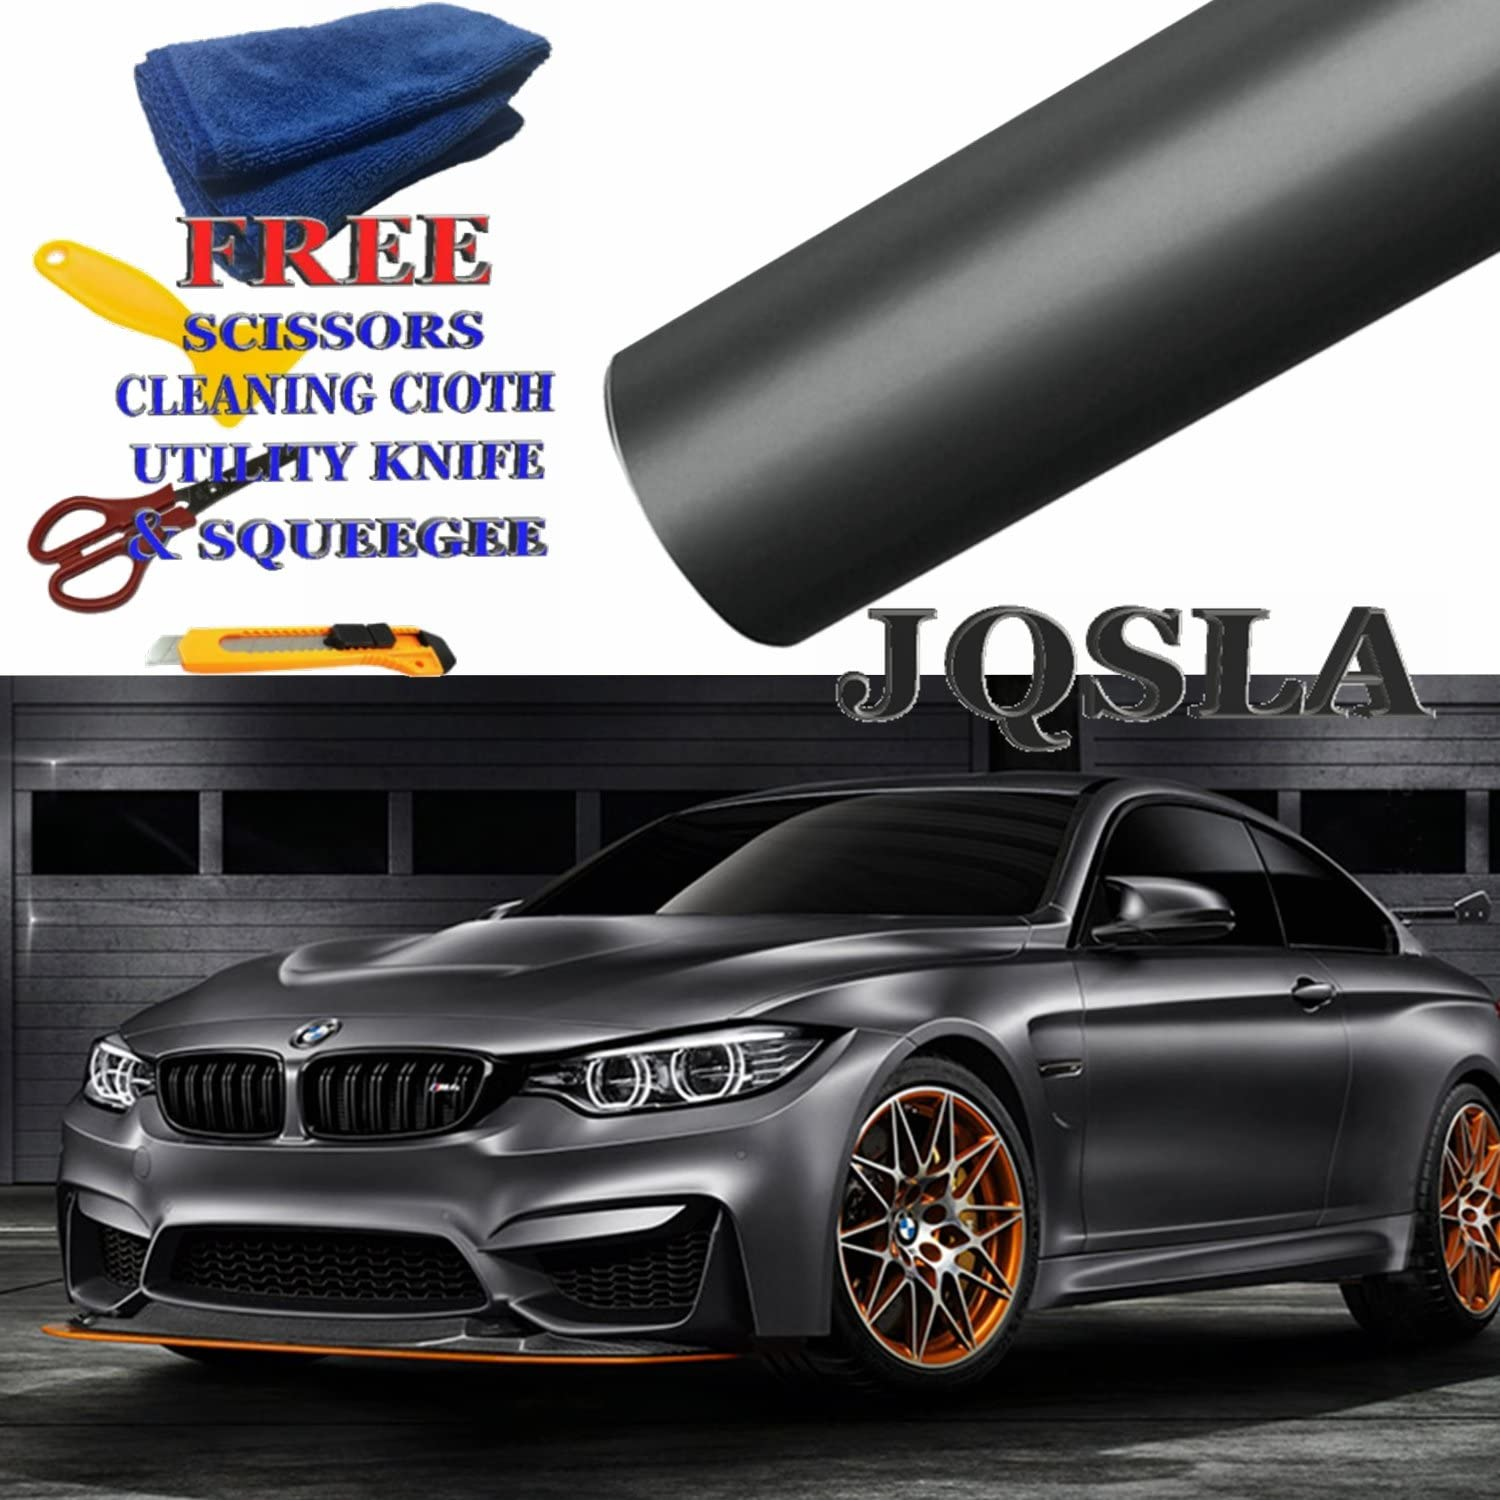 Cutter, Scissors, Squeegee /& Cleaning Cloth 1ft x 5ft // 12 in x 60 in JQSLA Premium Plating Black Gray Satin Matte Chrome Vinyl Film Wrap Sticker Air Bubble Free with Free Tools